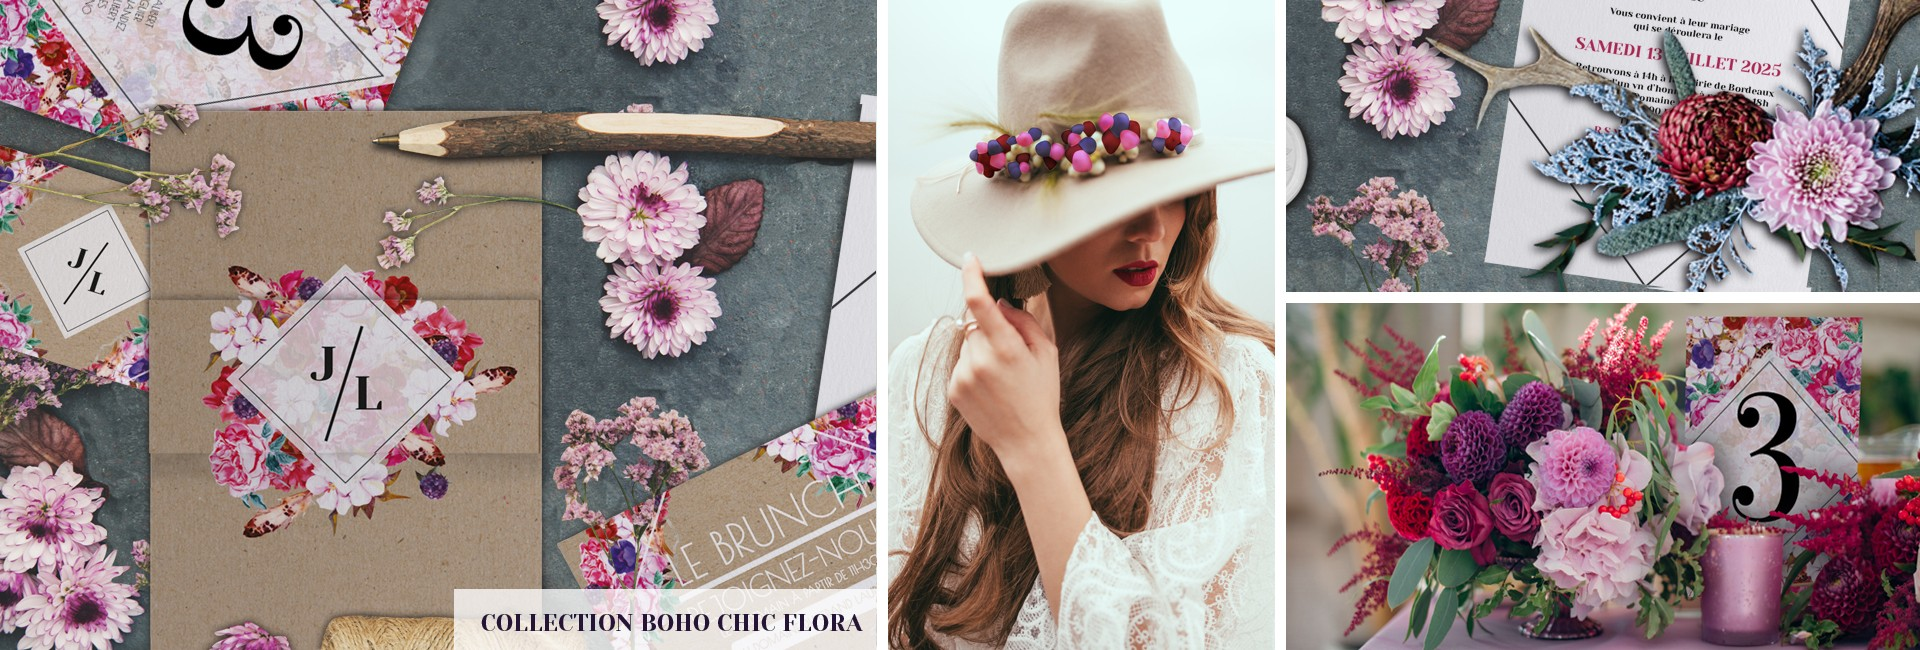 Collection boho chic Flora